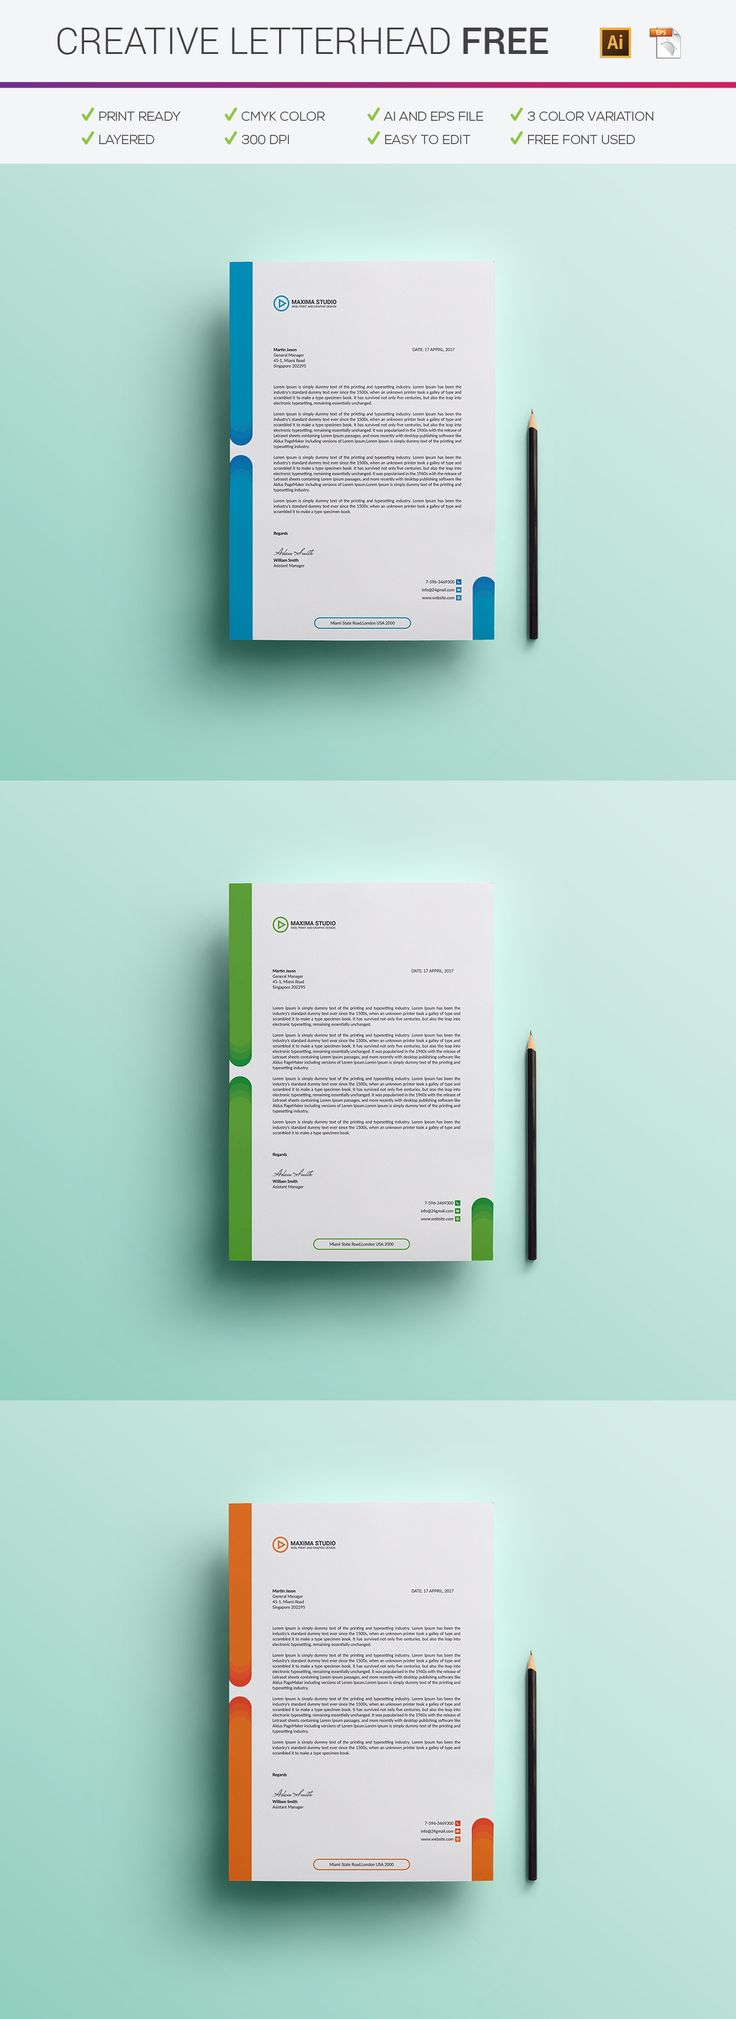 8 best letterhead design images on pinterest letterhead template free letterhead on behance spiritdancerdesigns Choice Image